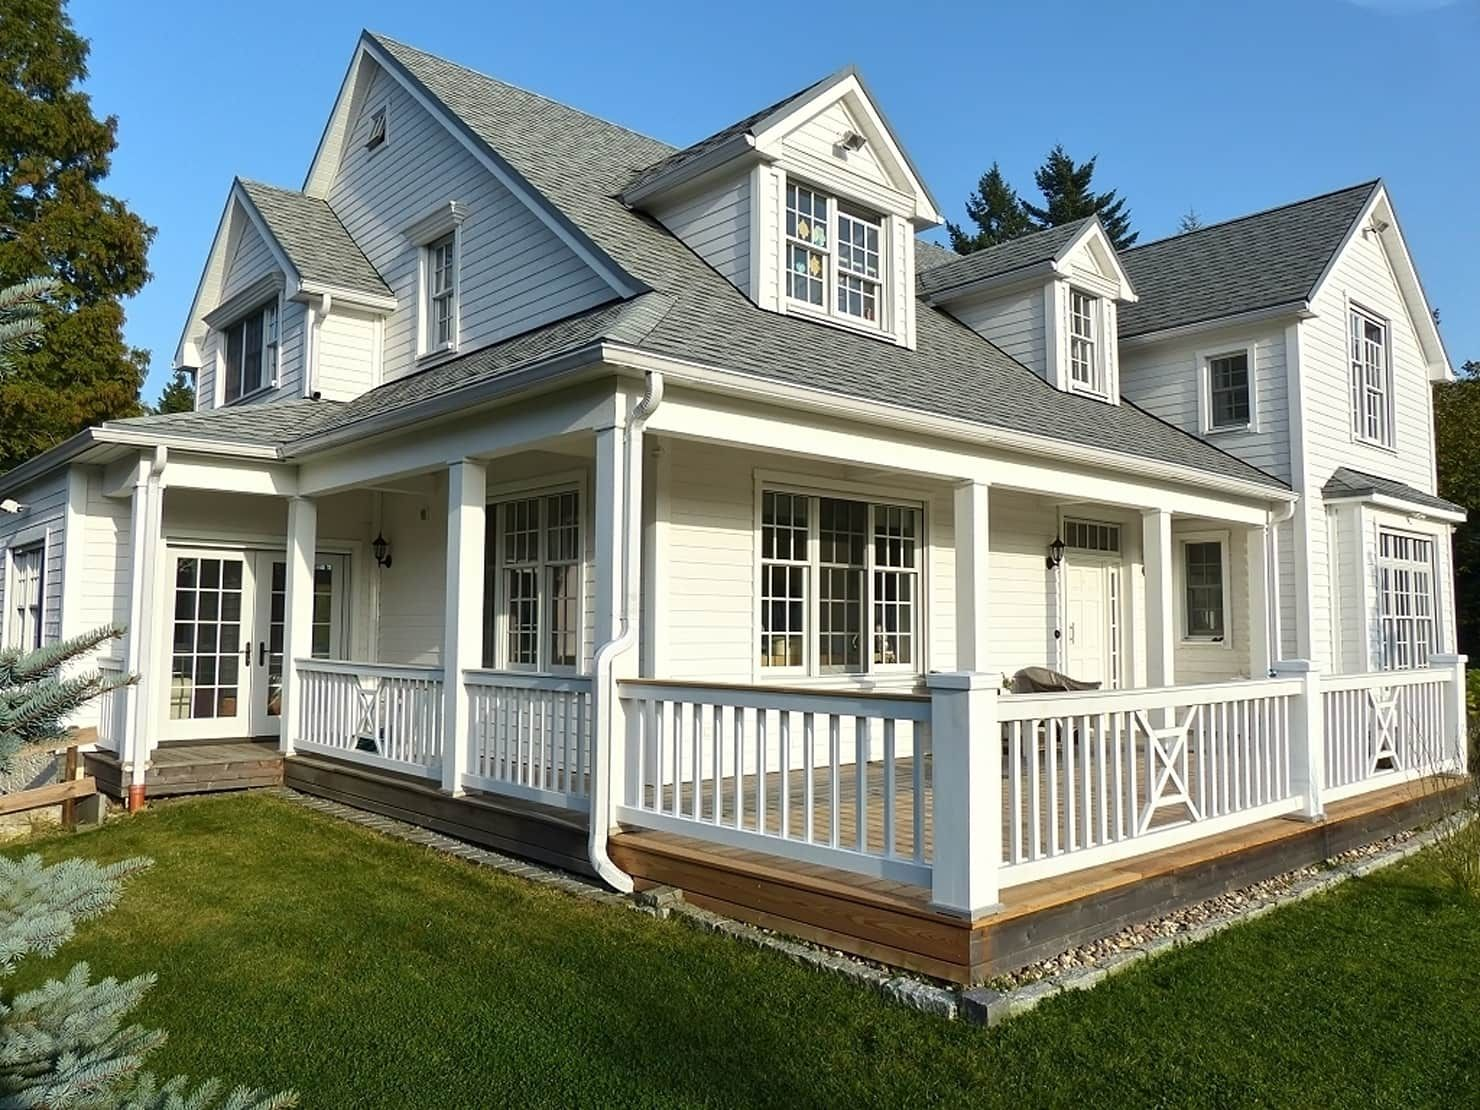 Country style house by the white house american dream ...